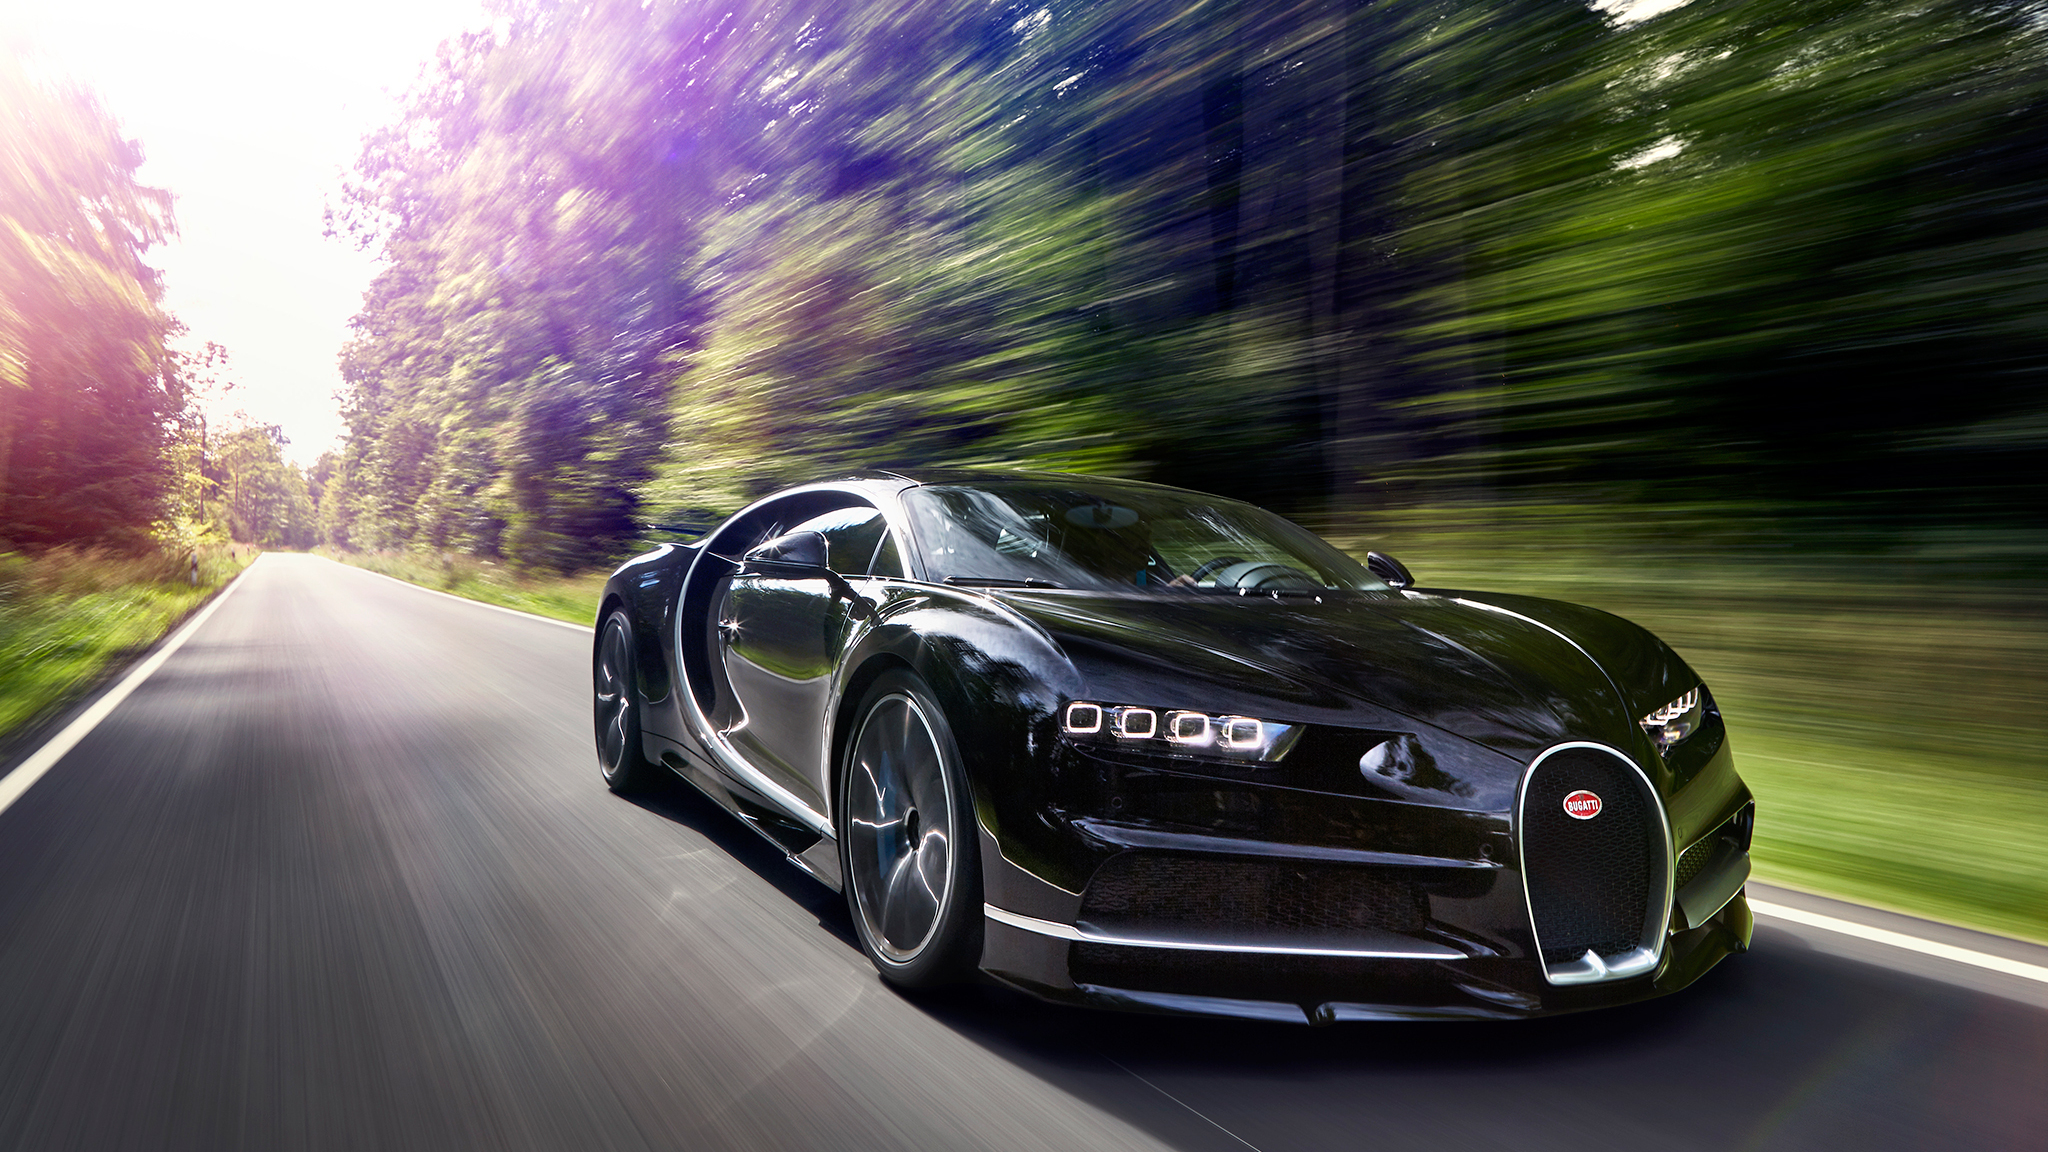 2048x1152 2017 bugatti chiron in motion 2048x1152 resolution hd 4k wallpapers images. Black Bedroom Furniture Sets. Home Design Ideas